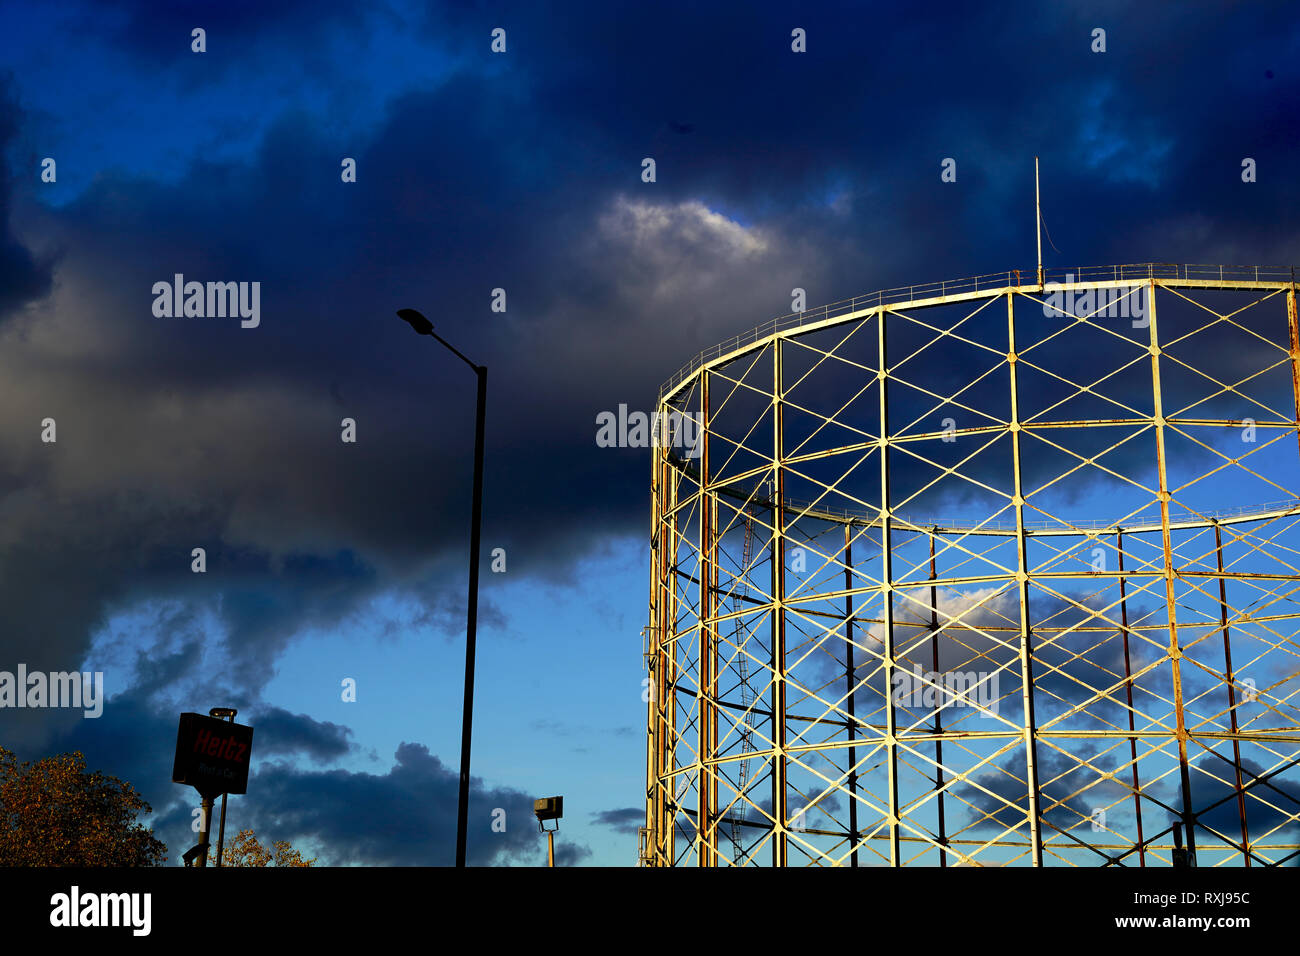 Dramatic sky over a Gasometer in south London. - Stock Image